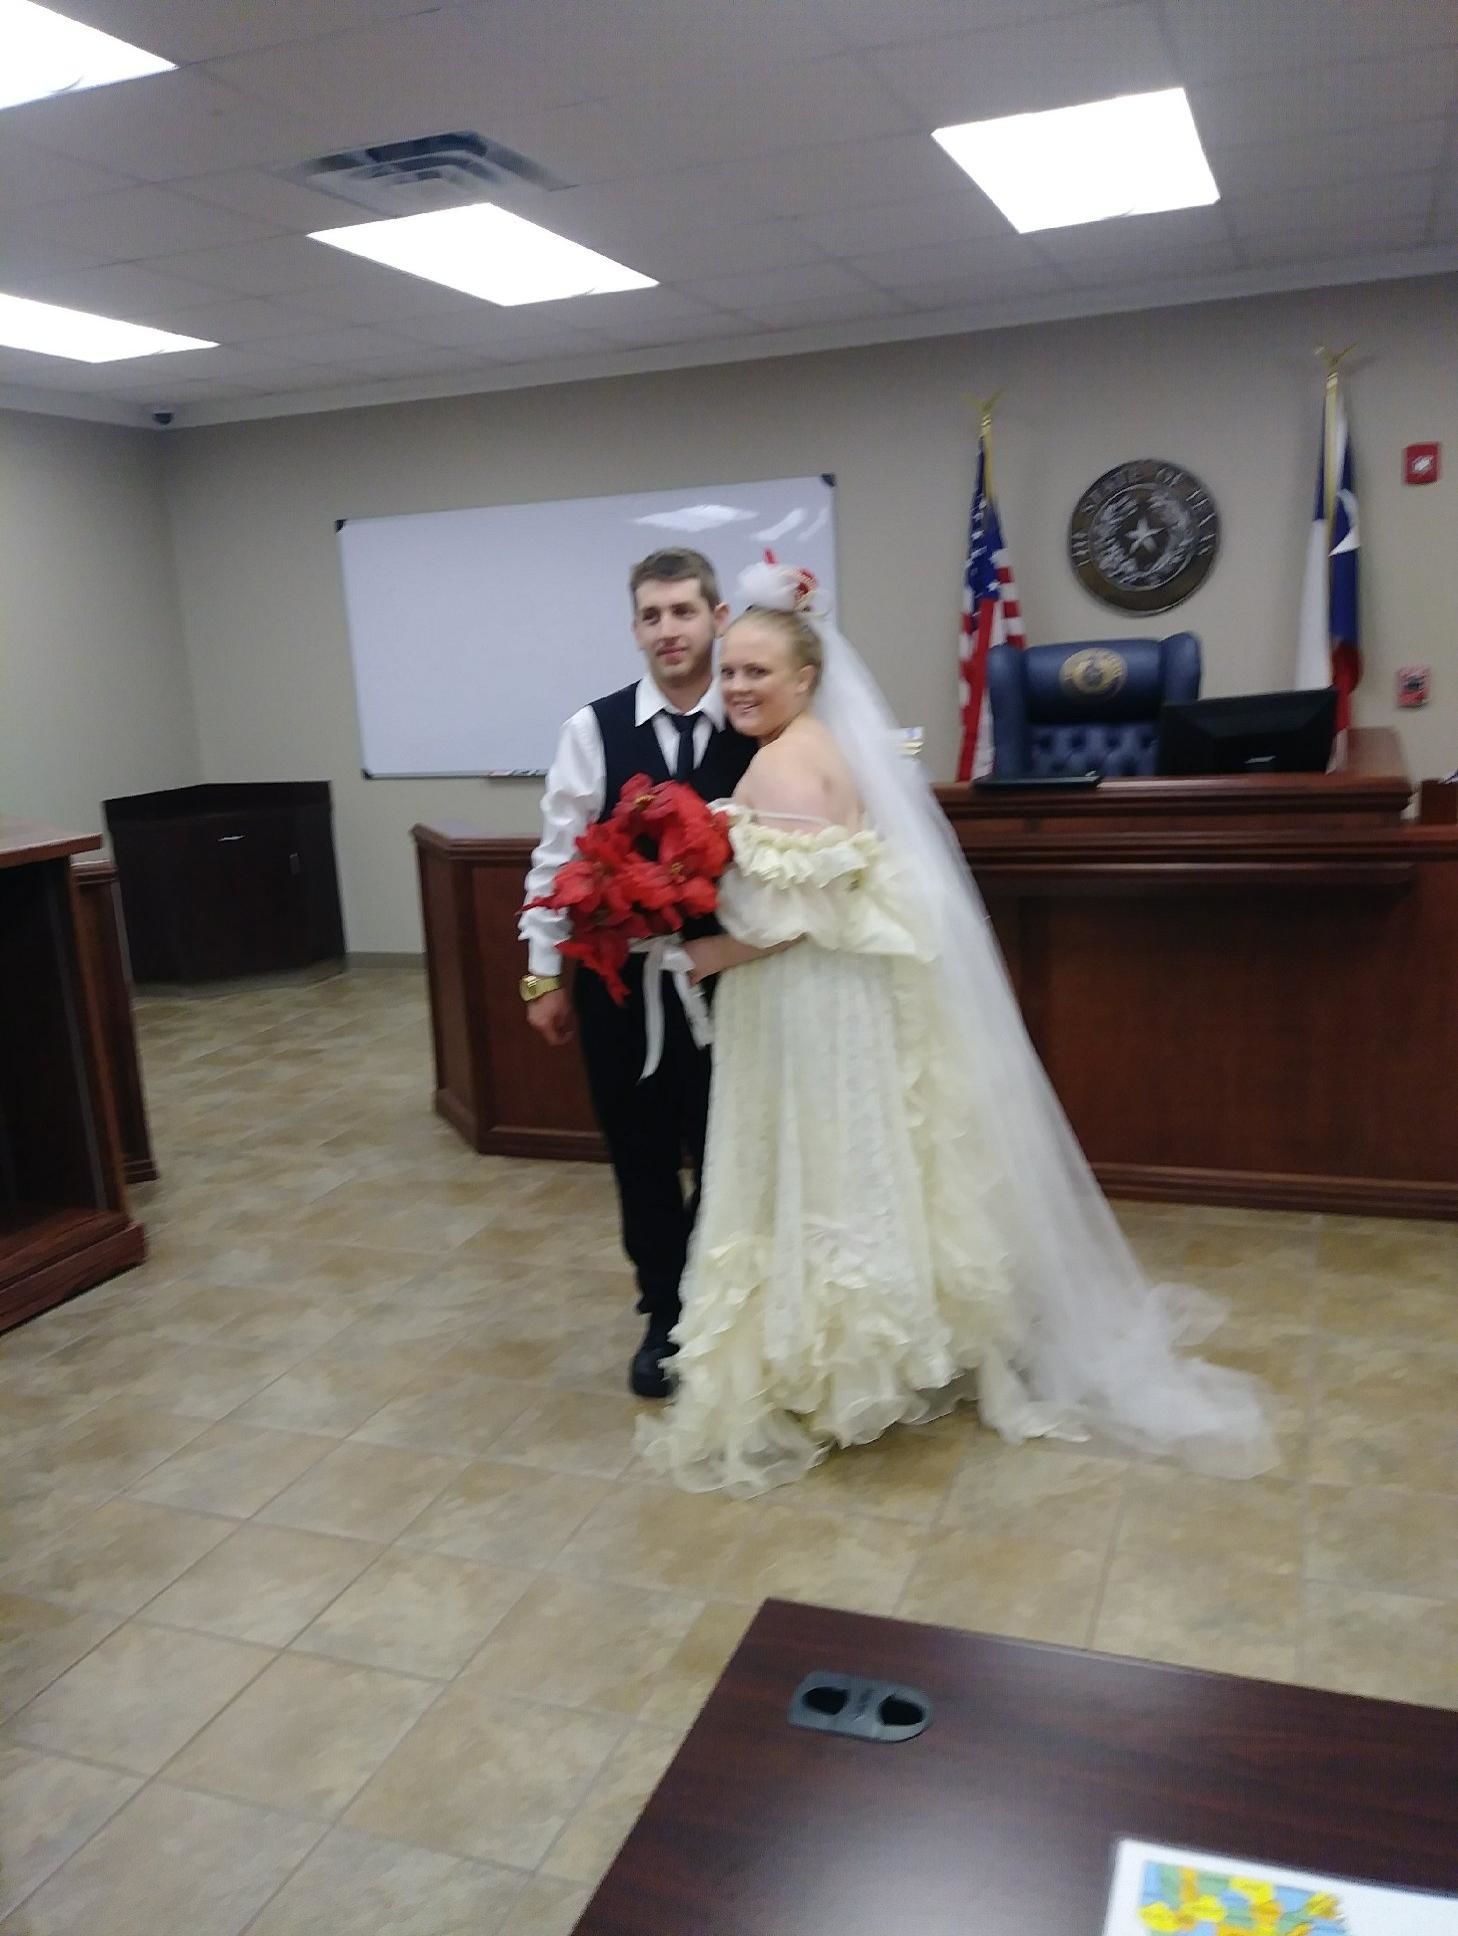 Courtesy: Christina Fontenot, sister of groom{&nbsp;}<p></p><p></p>